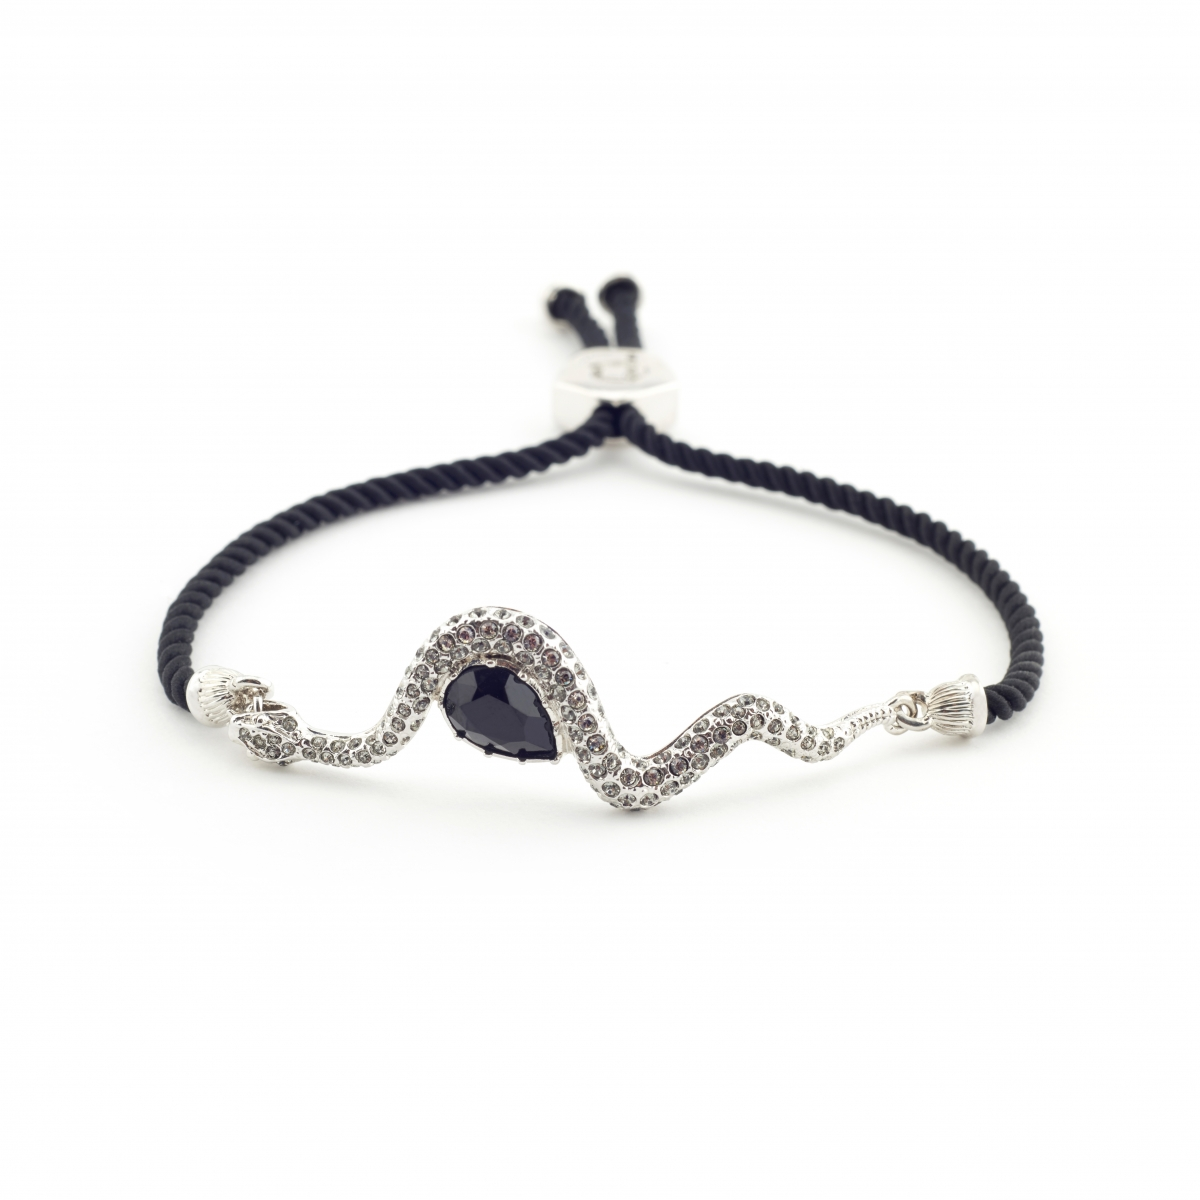 Serpent Friendship Bracelet